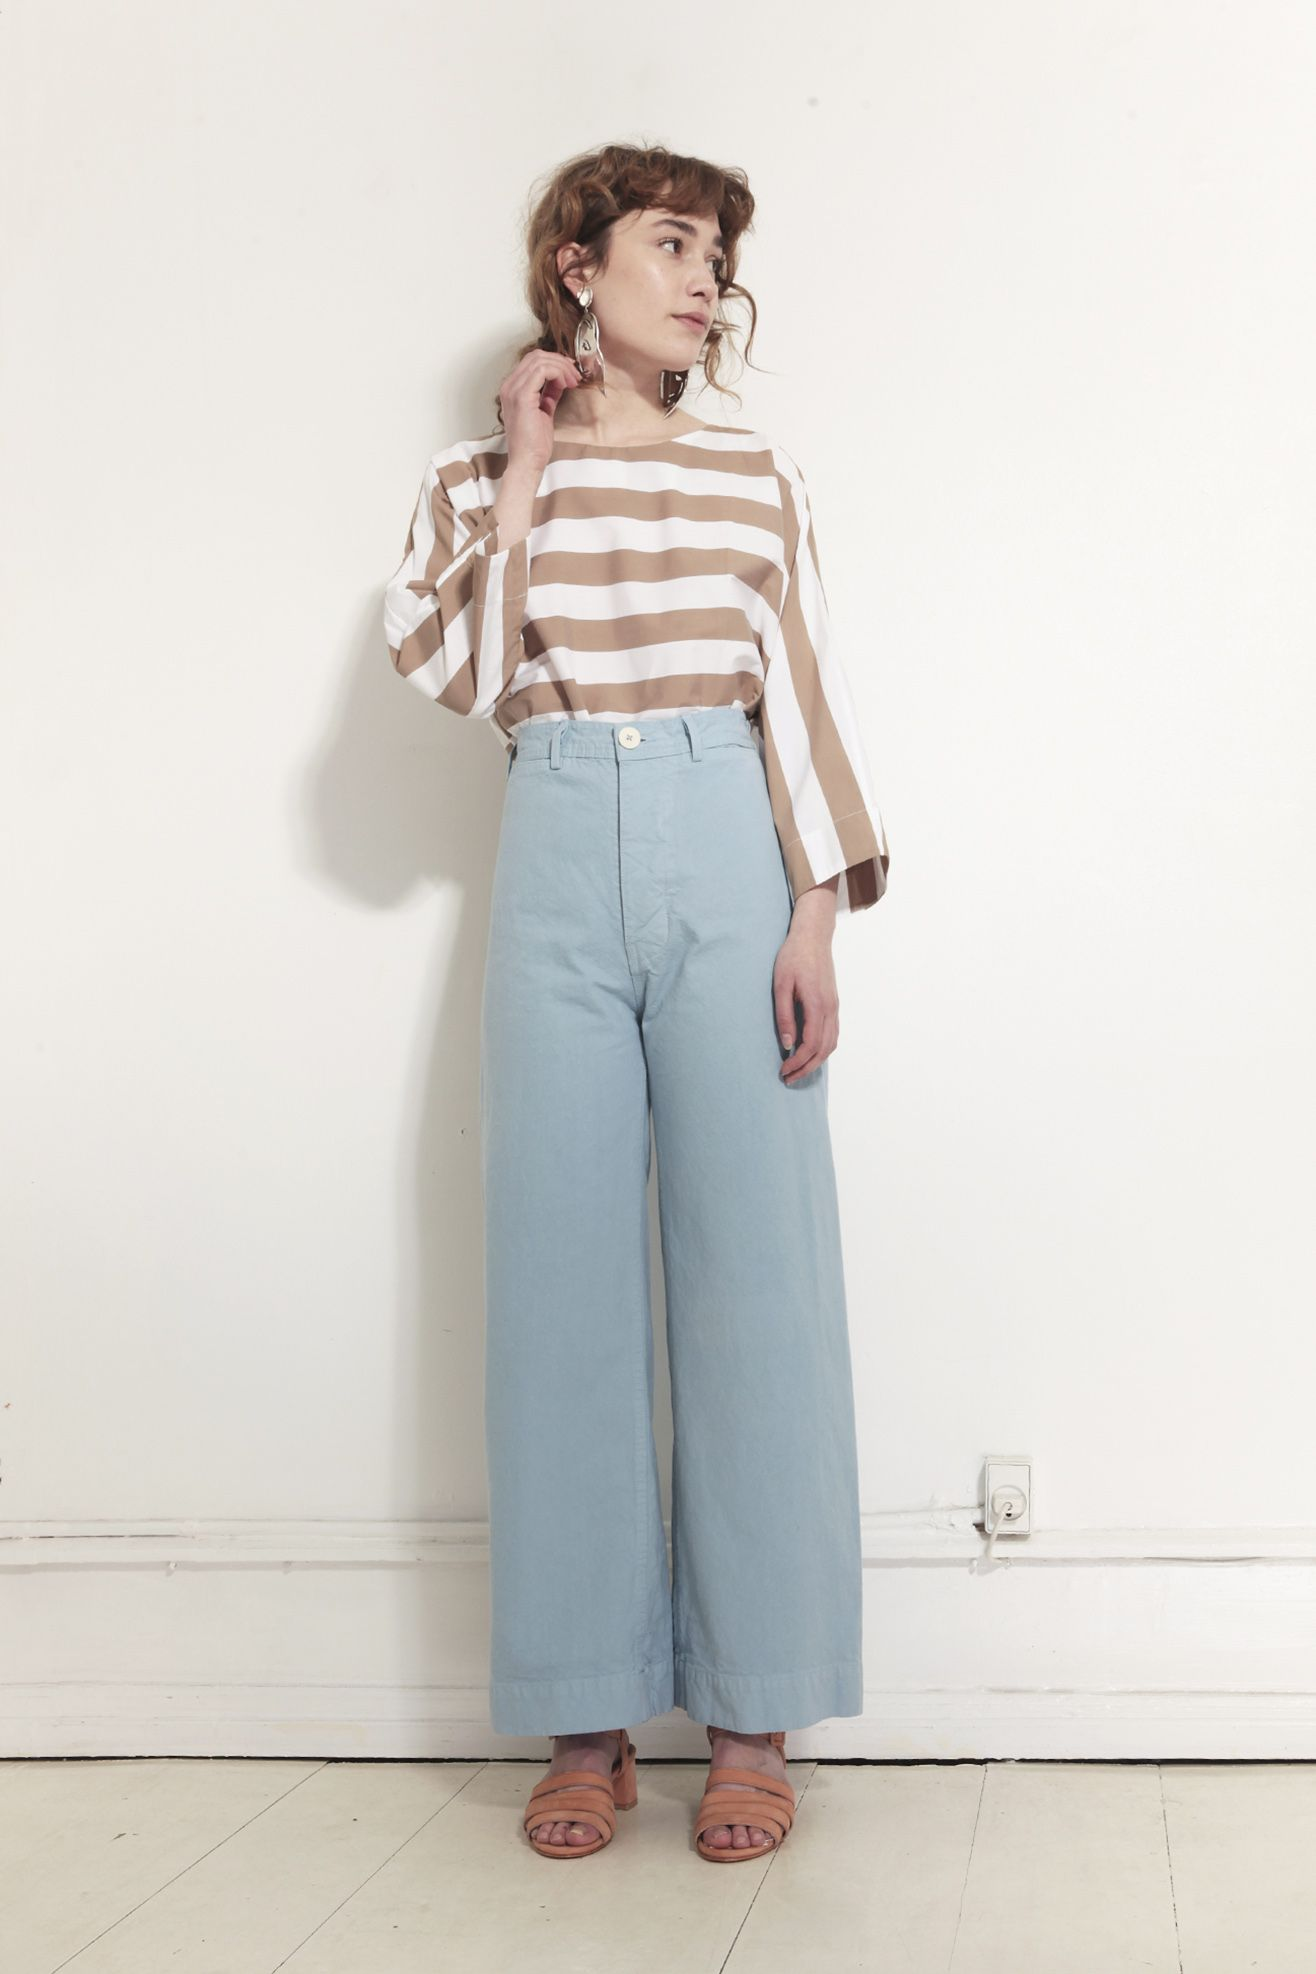 7e0caf0bf3afb9 JESSE KAMM, Sailor Pants, Piscine | Style | Fashion, Sailor pants, Style